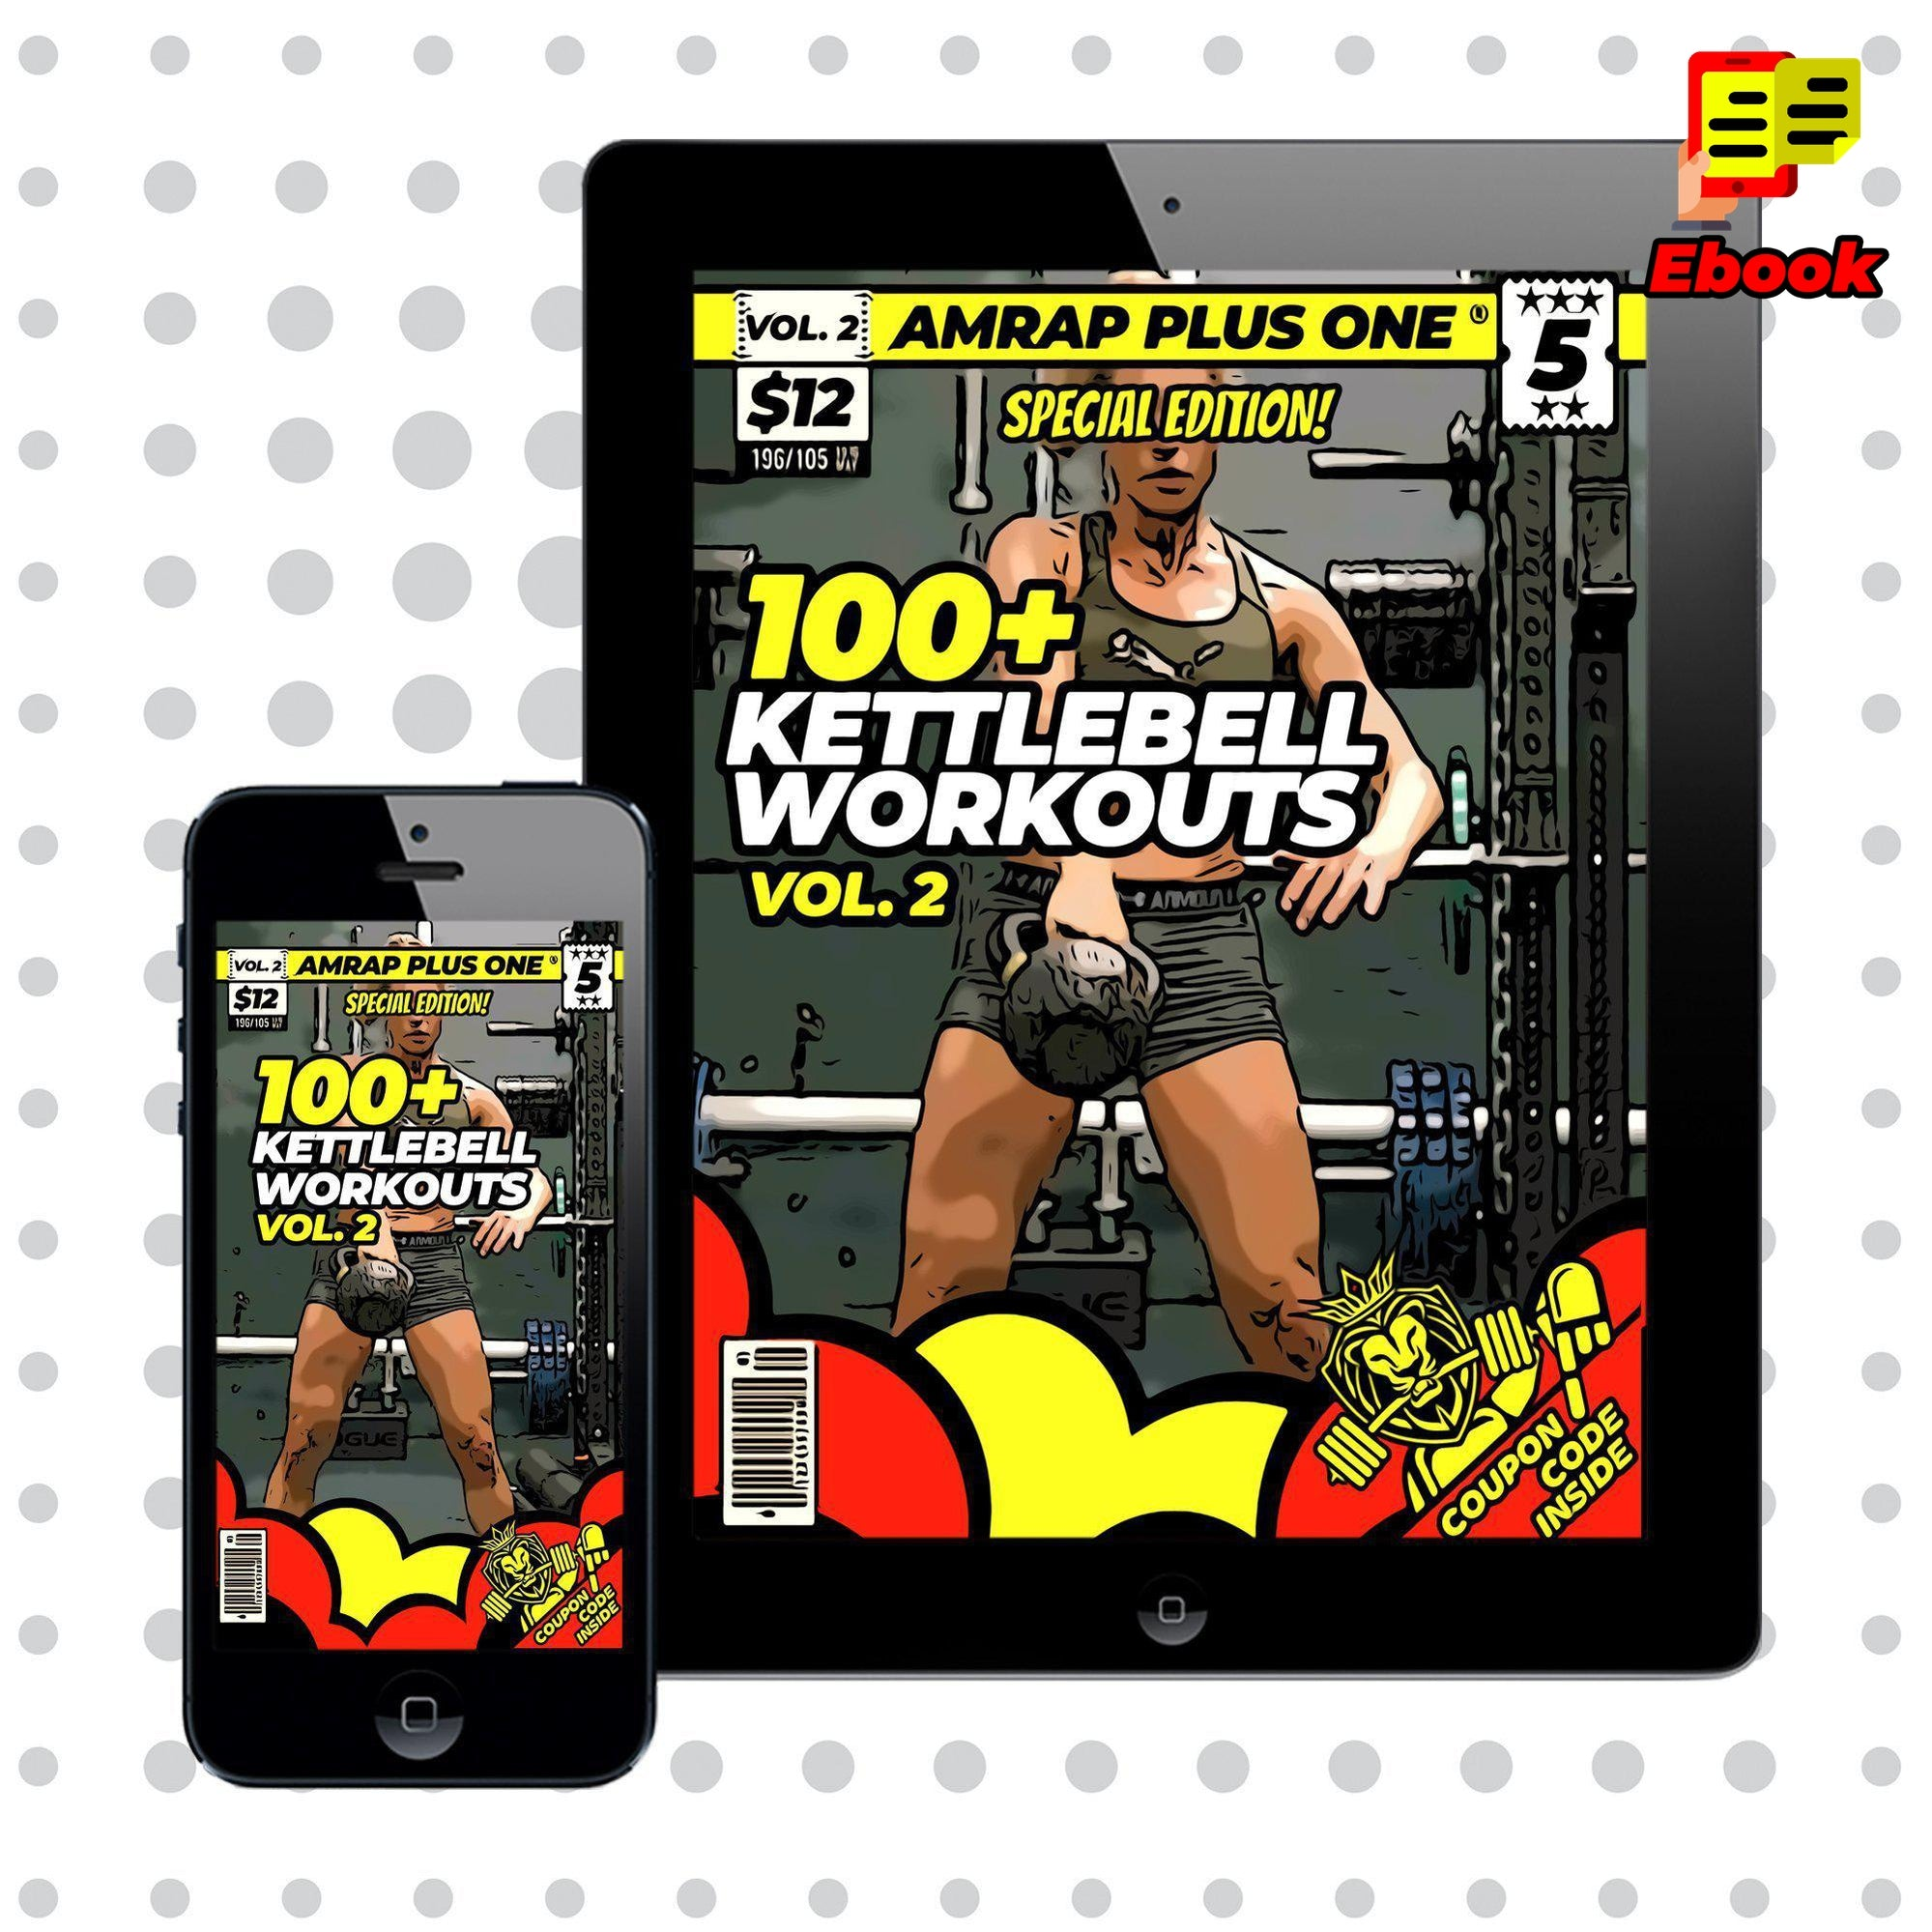 100+ Kettlebell Workouts Vol. 2 - AMRAP Plus One